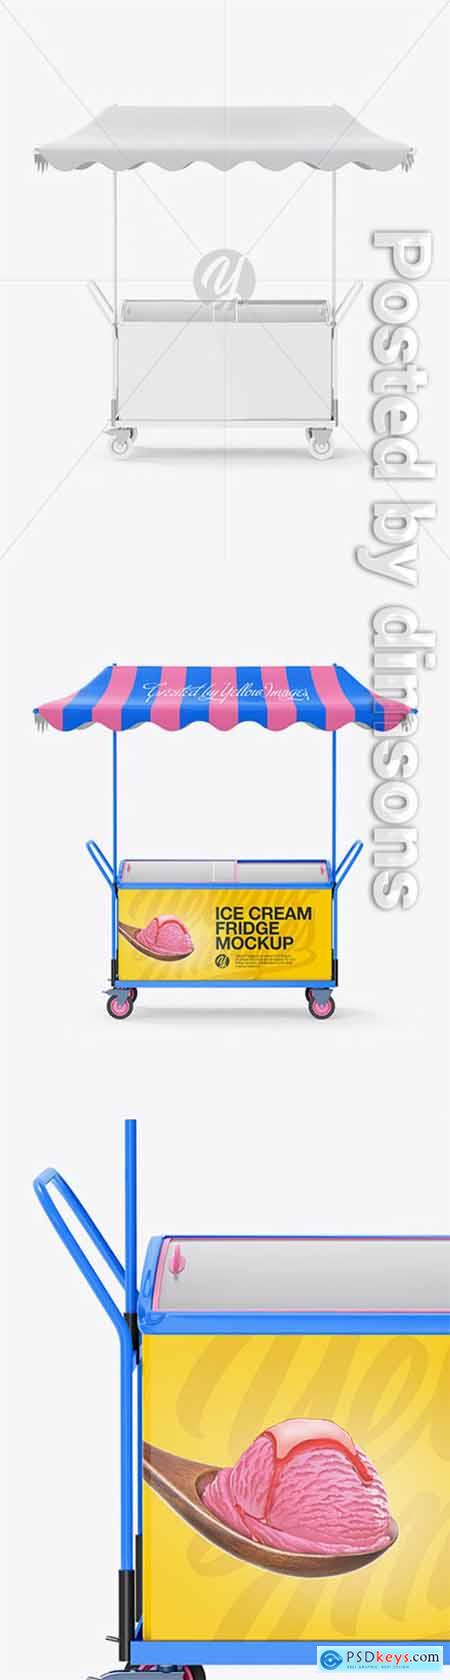 Ice Cream Fridge With Awning Mockup - Front View 19563